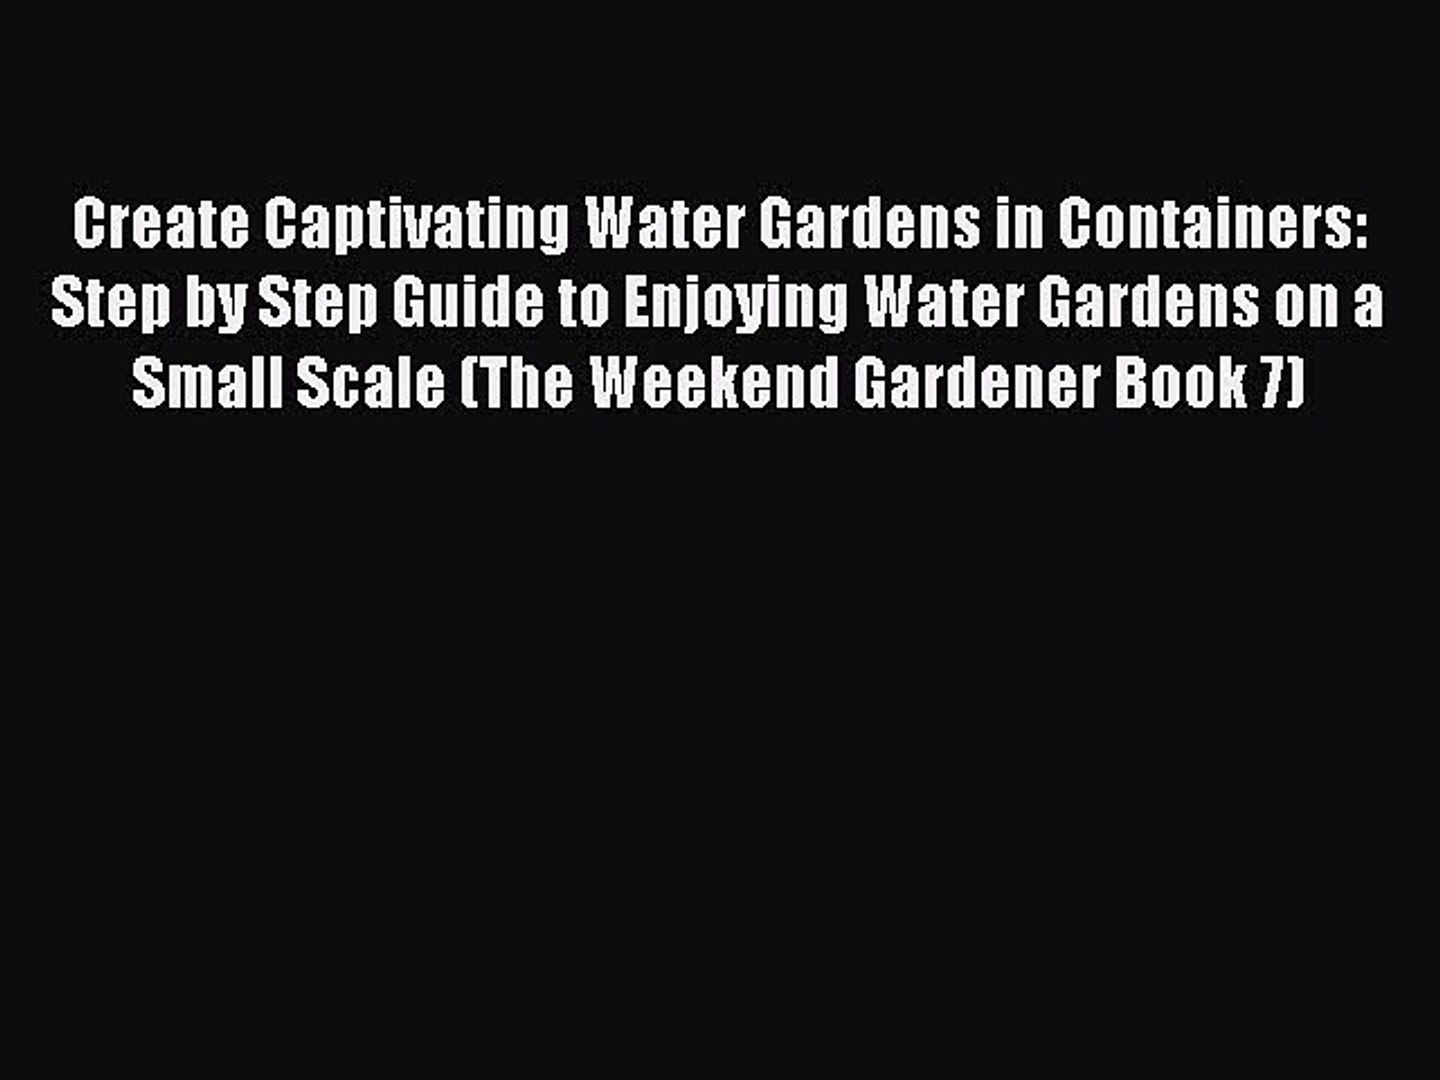 Read Create Captivating Water Gardens in Containers: Step by Step Guide to Enjoying Water Gardens